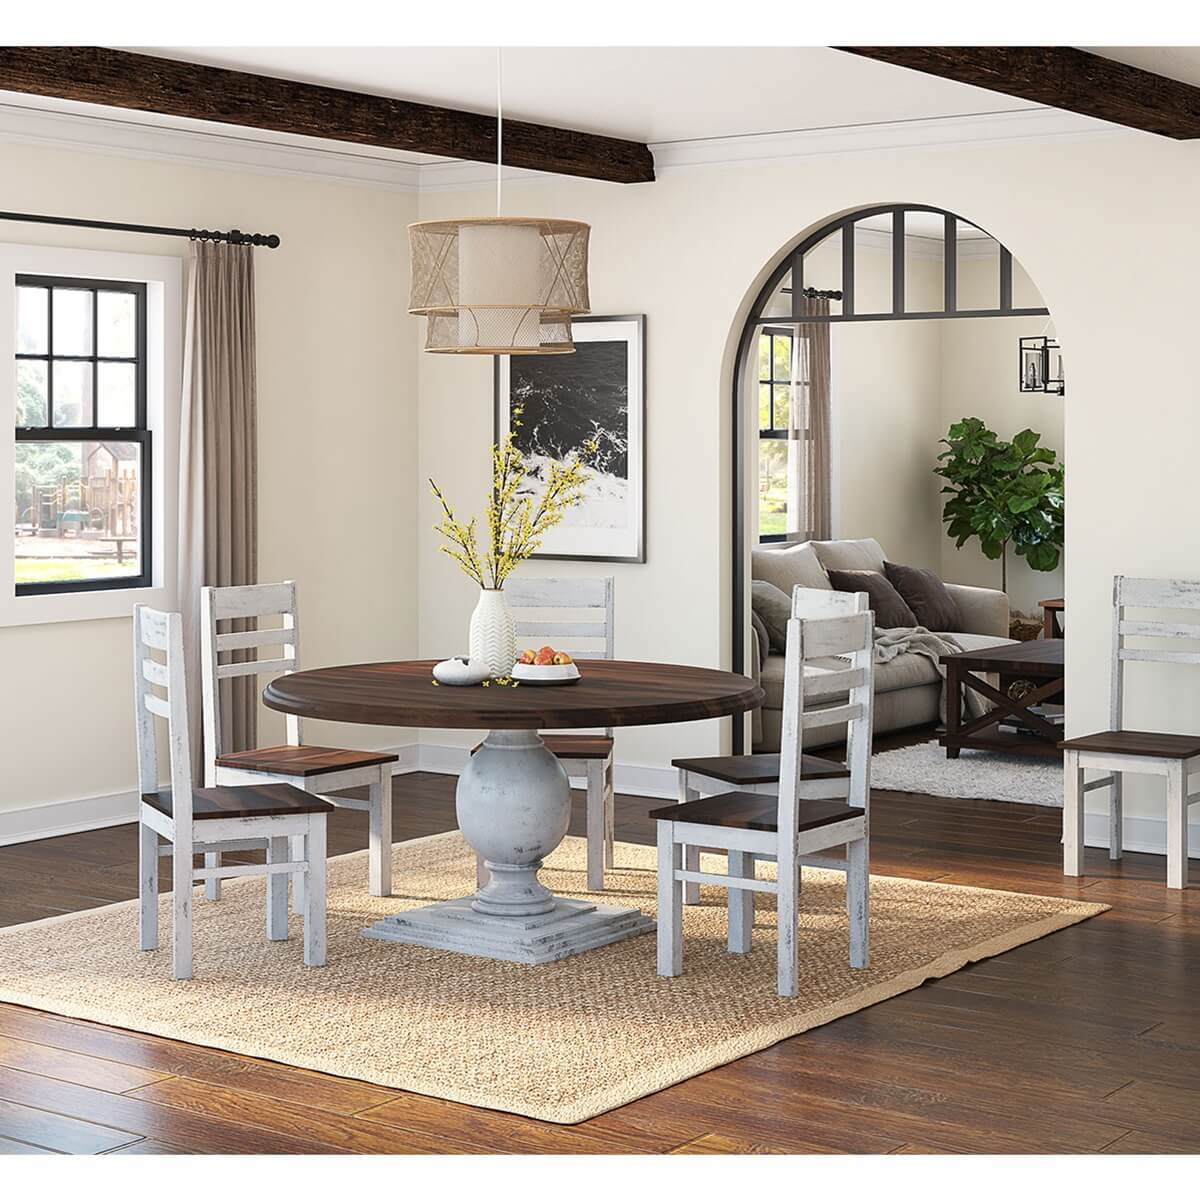 2 Chair Dining Table Illinois Modern Two Tone Large Round Dining Table With 8